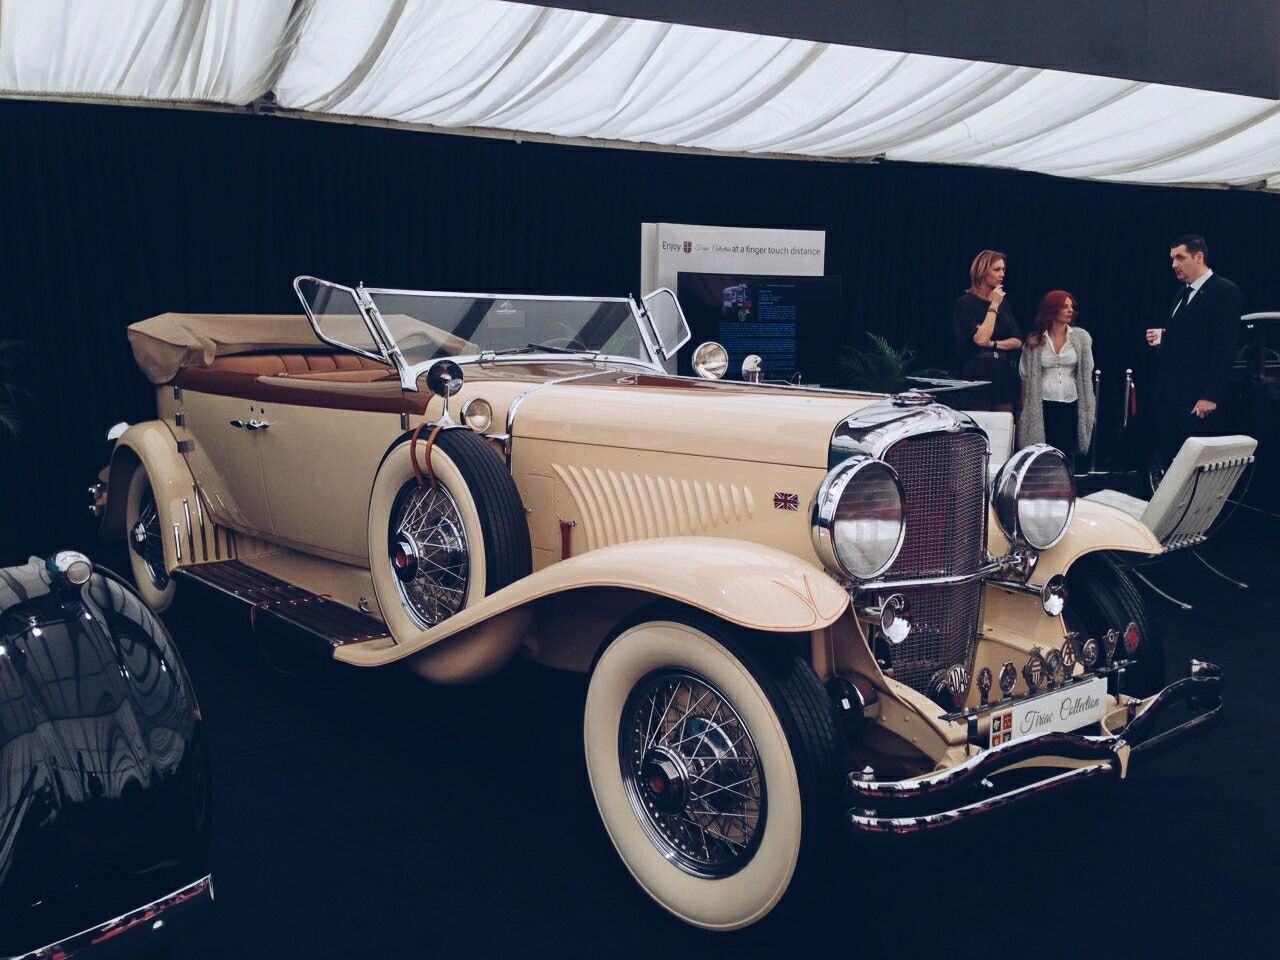 A Vintage Car from the Tiriac Collection😍❤ Vintage Cars Cars CarShow Carexpo Exposition Vscocam VSCO